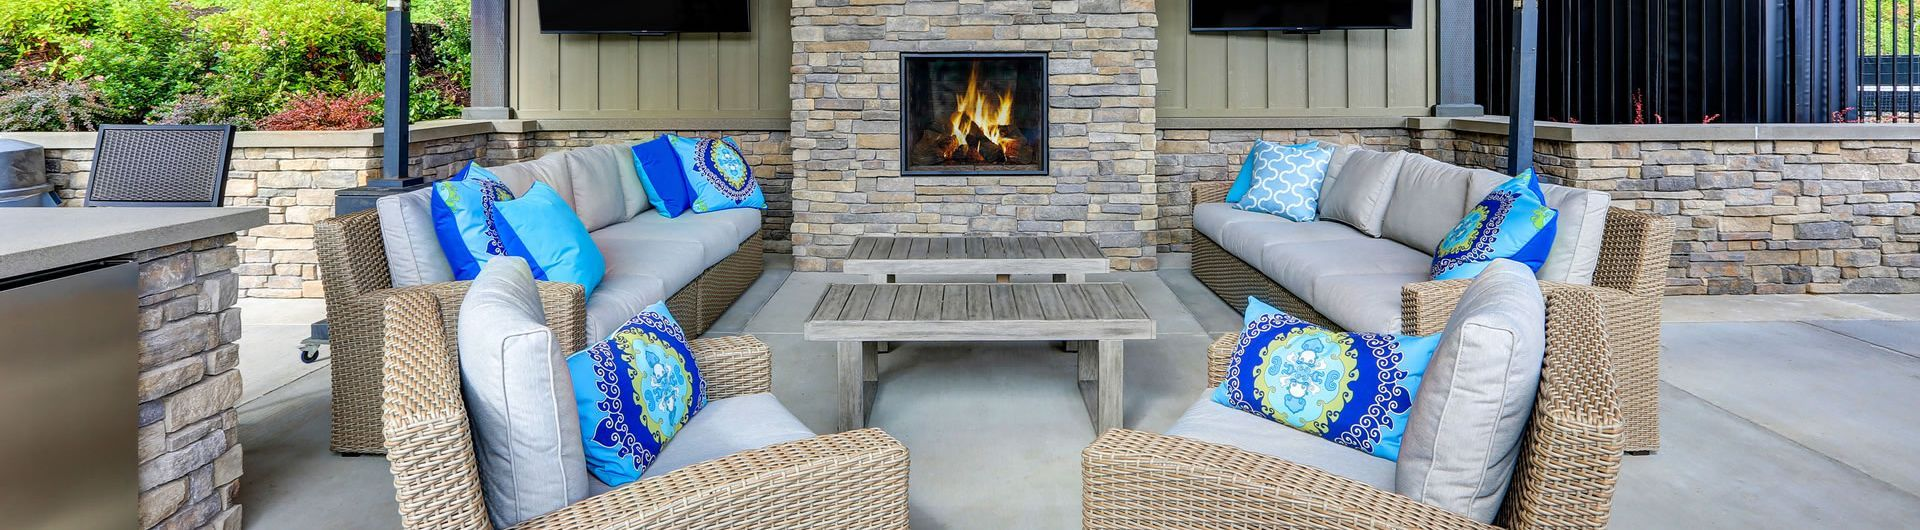 patio setting with fireplace